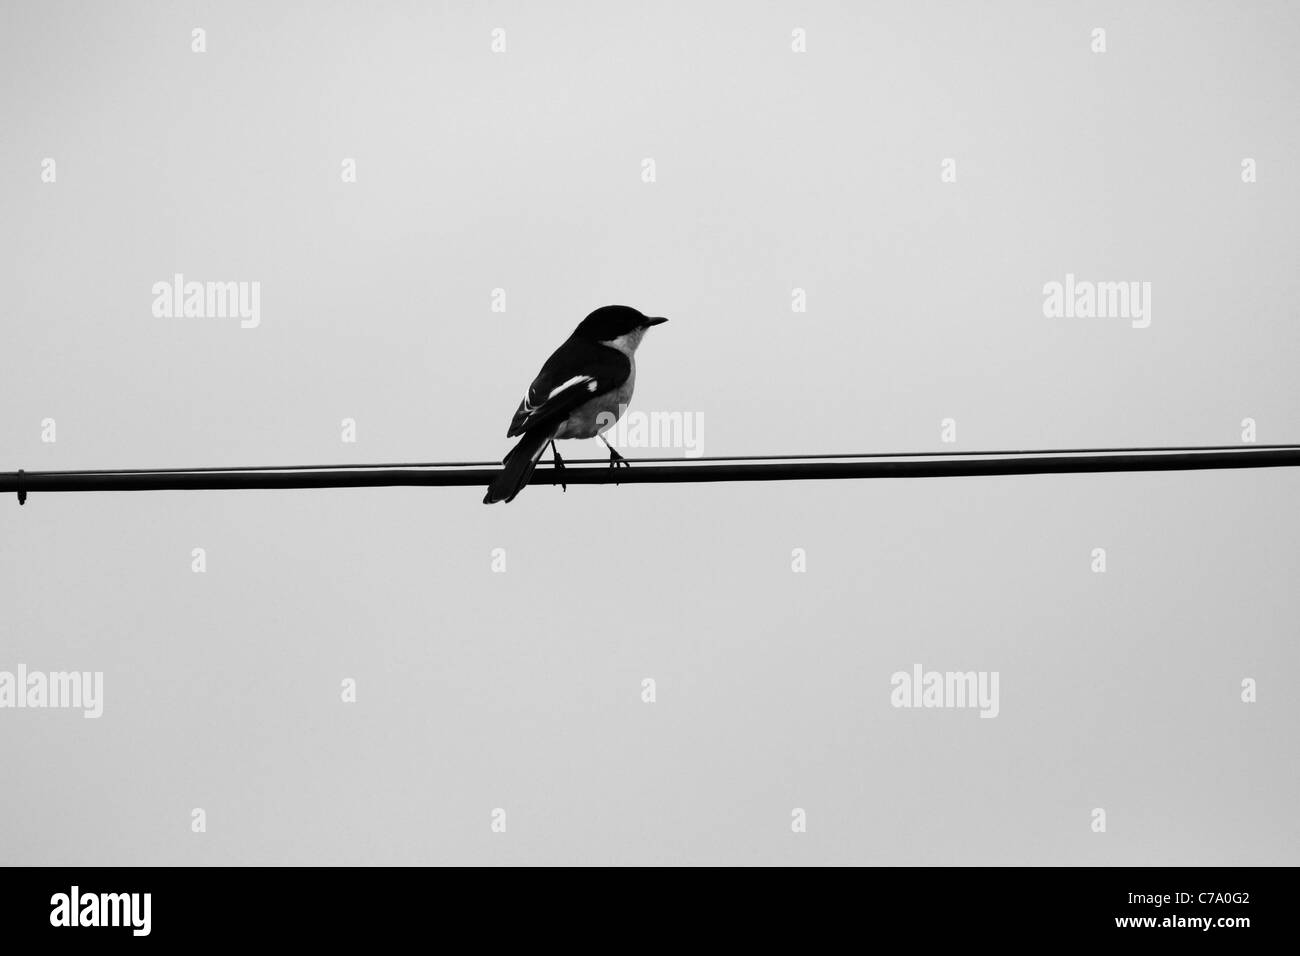 Telephone Wire Black and White Stock Photos & Images - Alamy